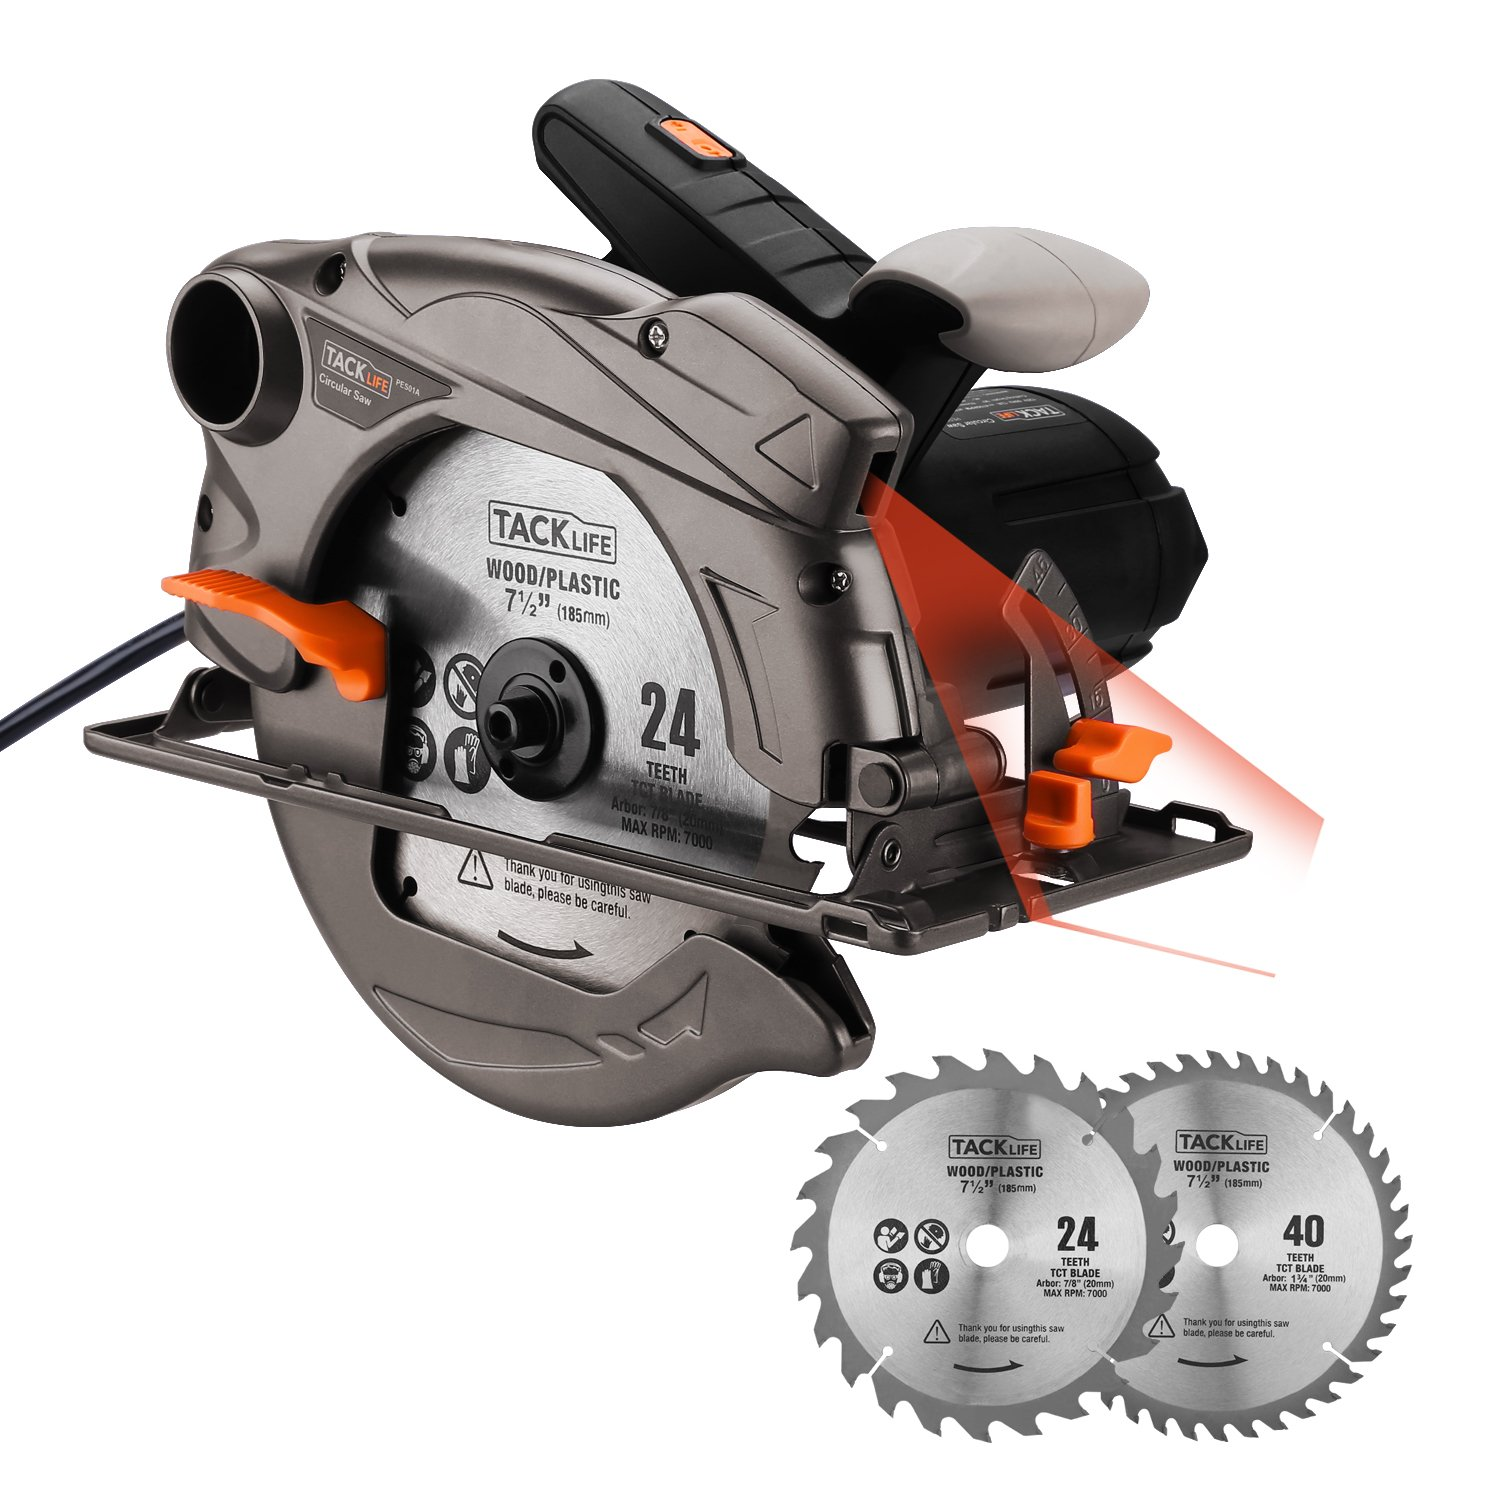 Tacklife 7-1/4 inch Circular Saw with Laser Guide